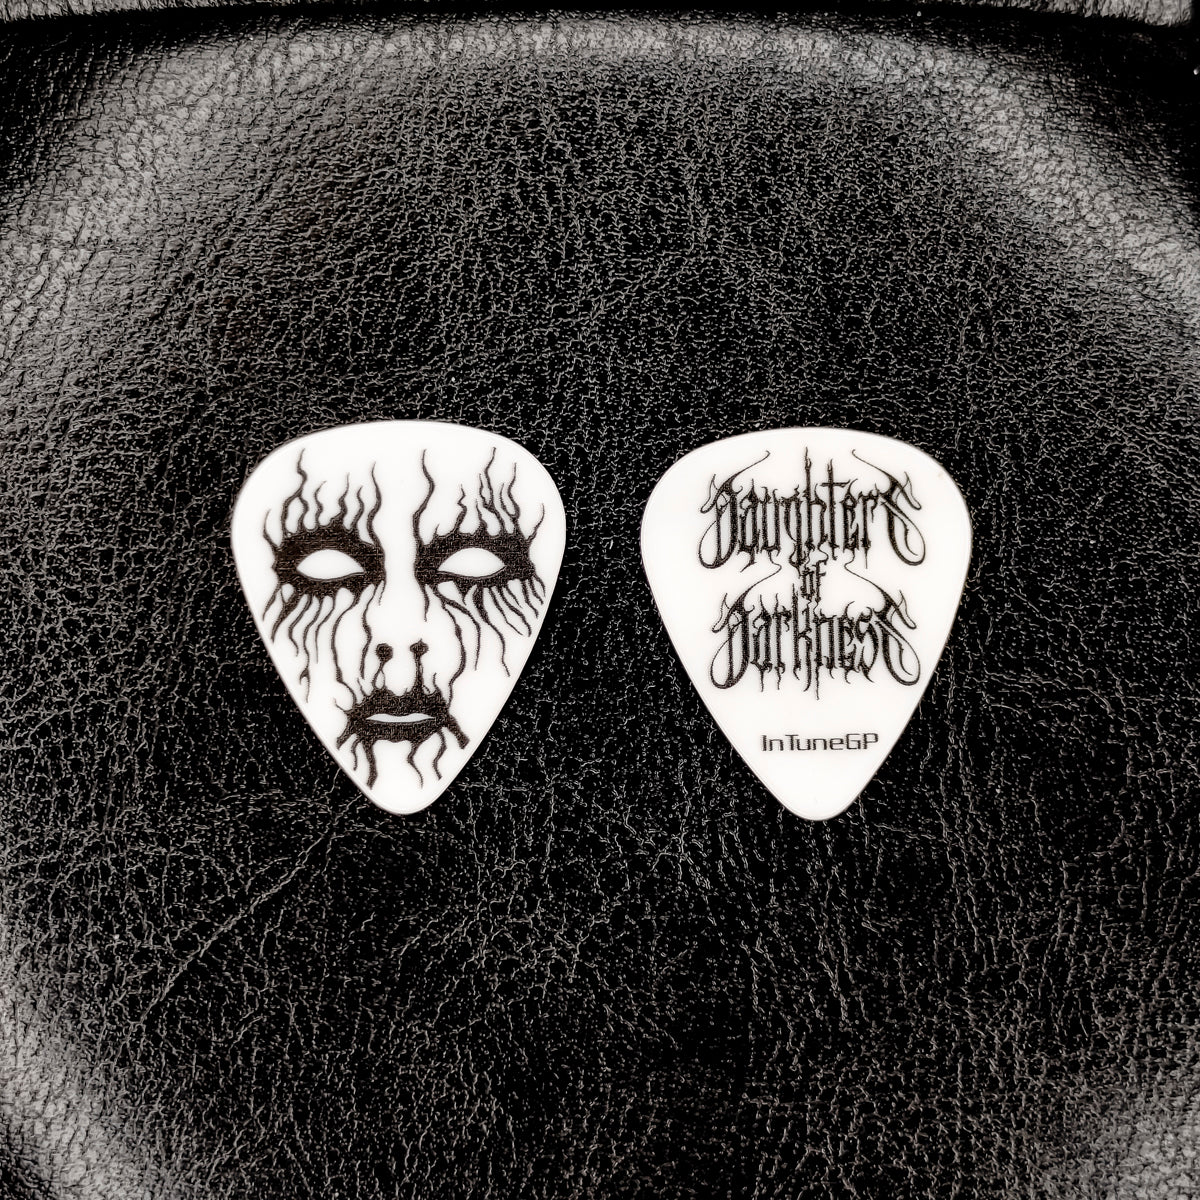 Daughters of Darkness - Shonda - Guitar Pick